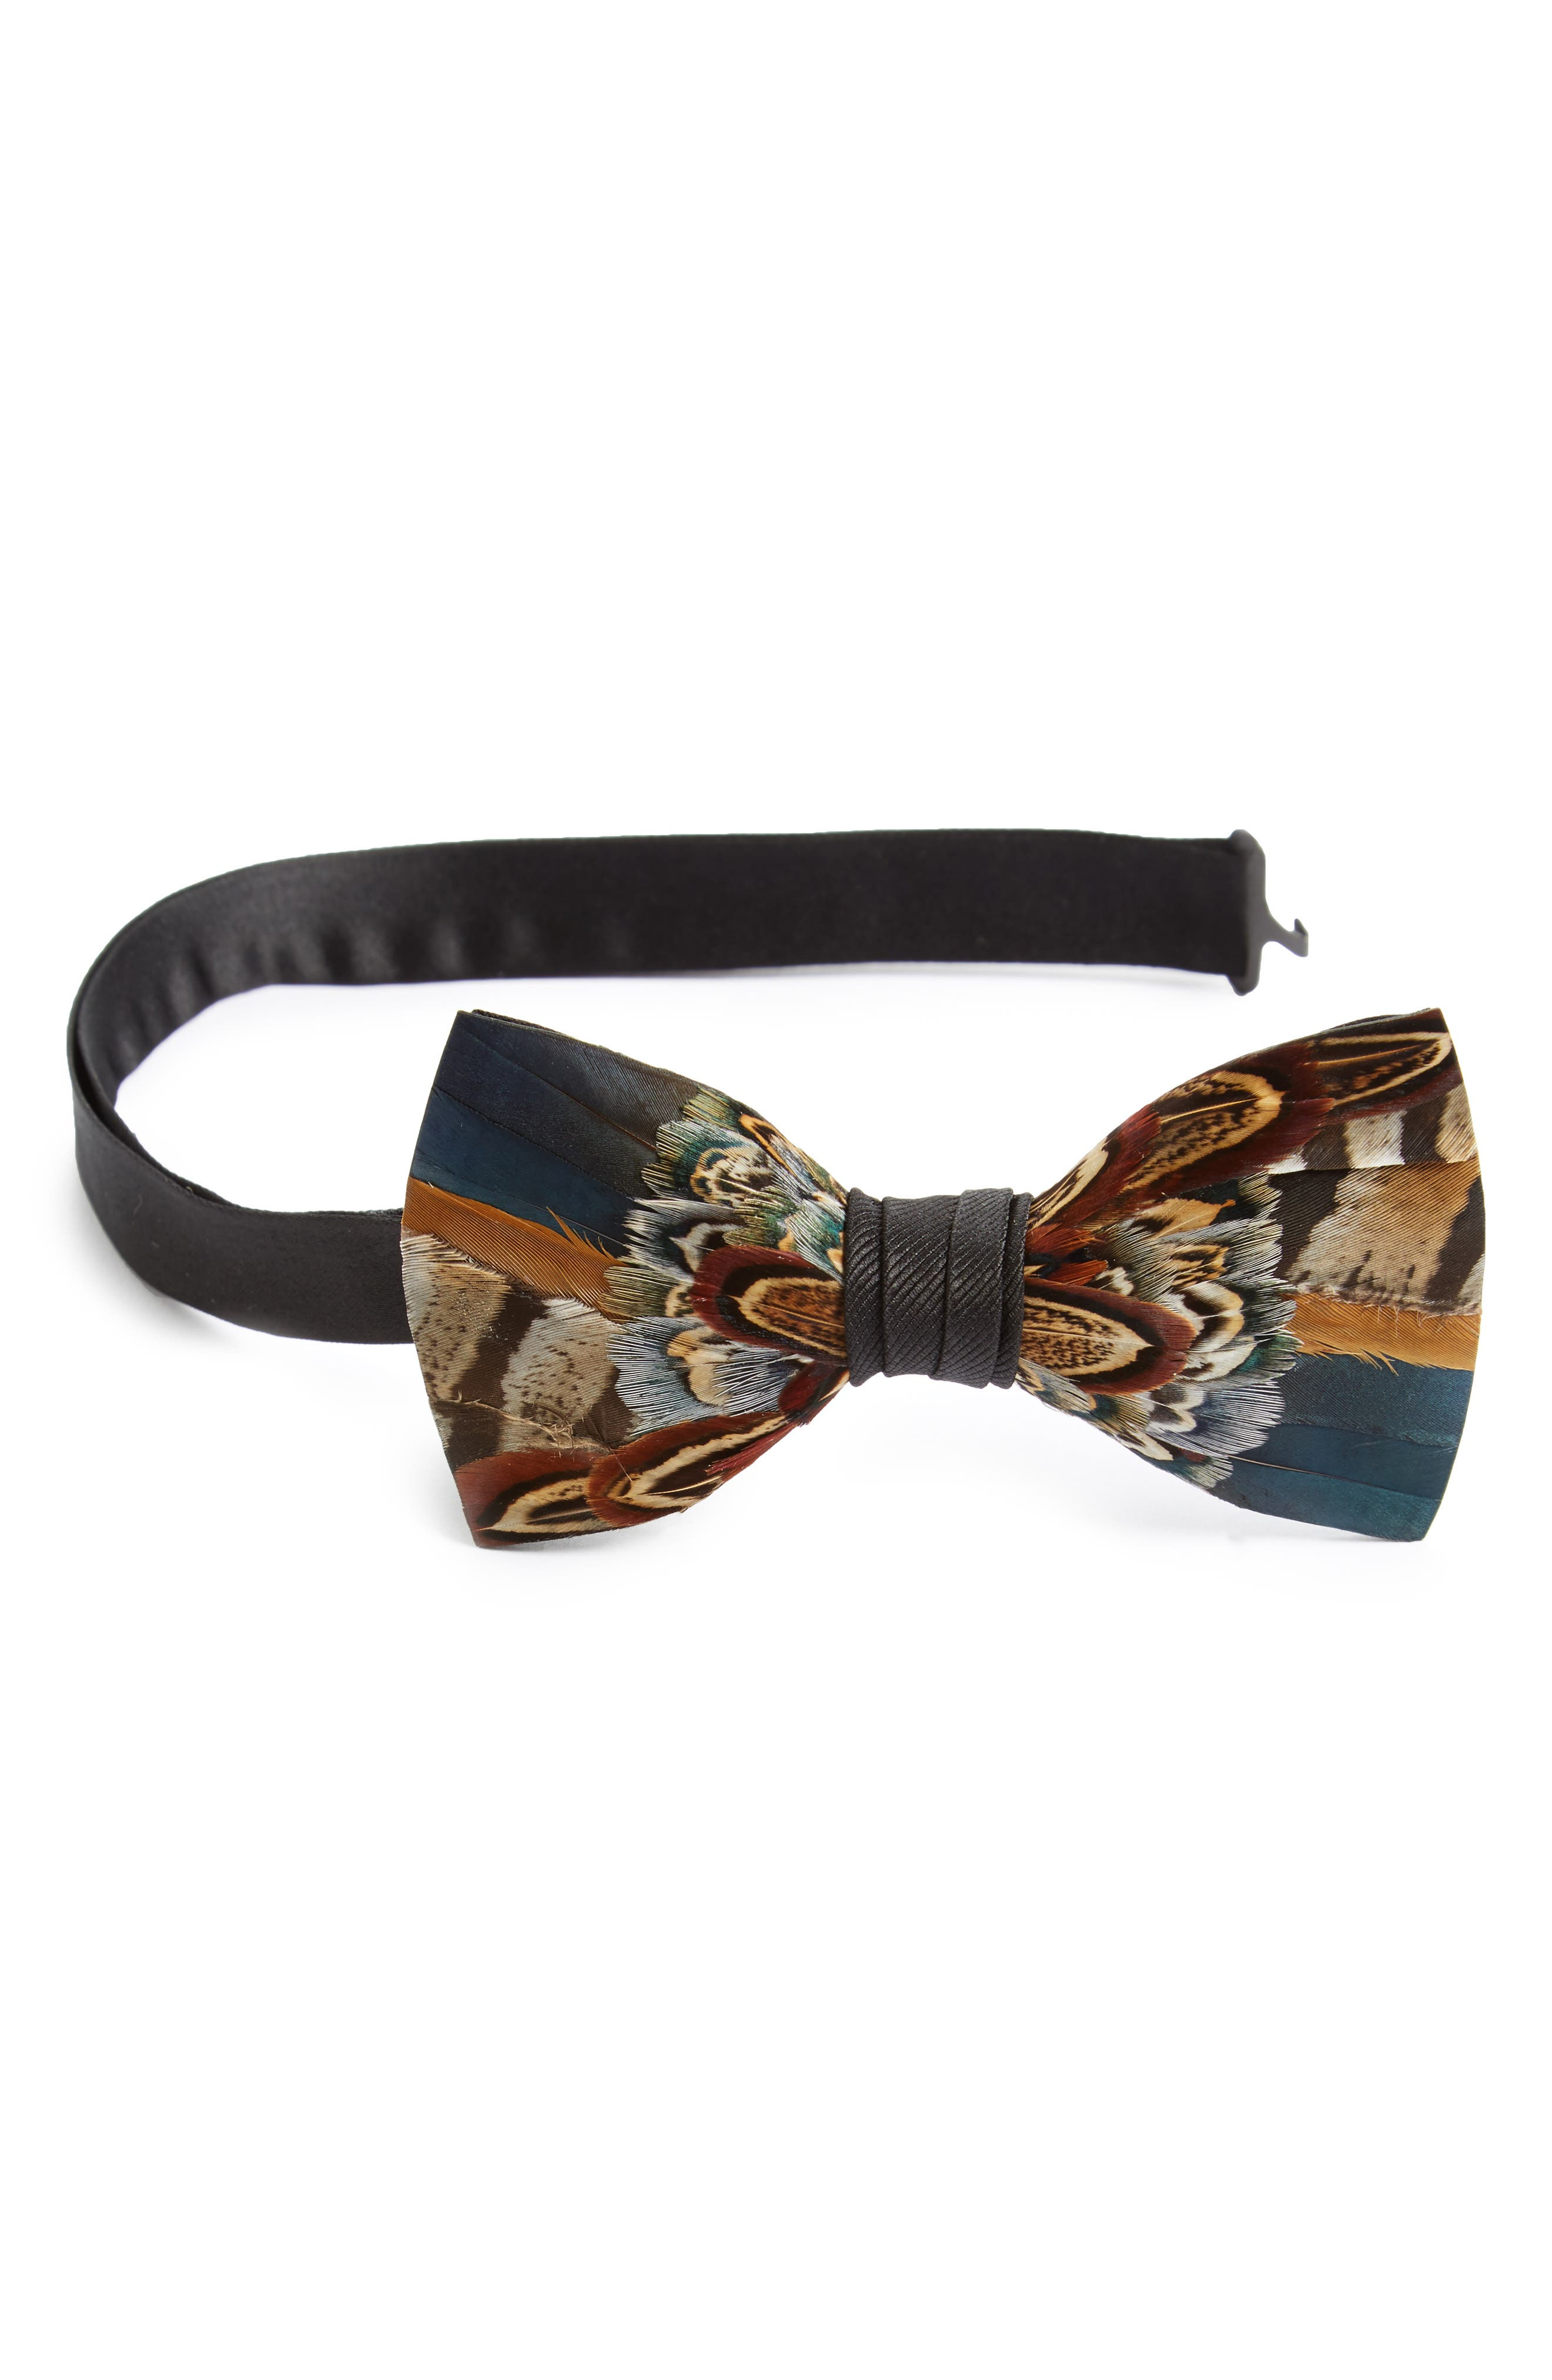 Main Image - Brackish & Bell Pollock Feather Bow Tie